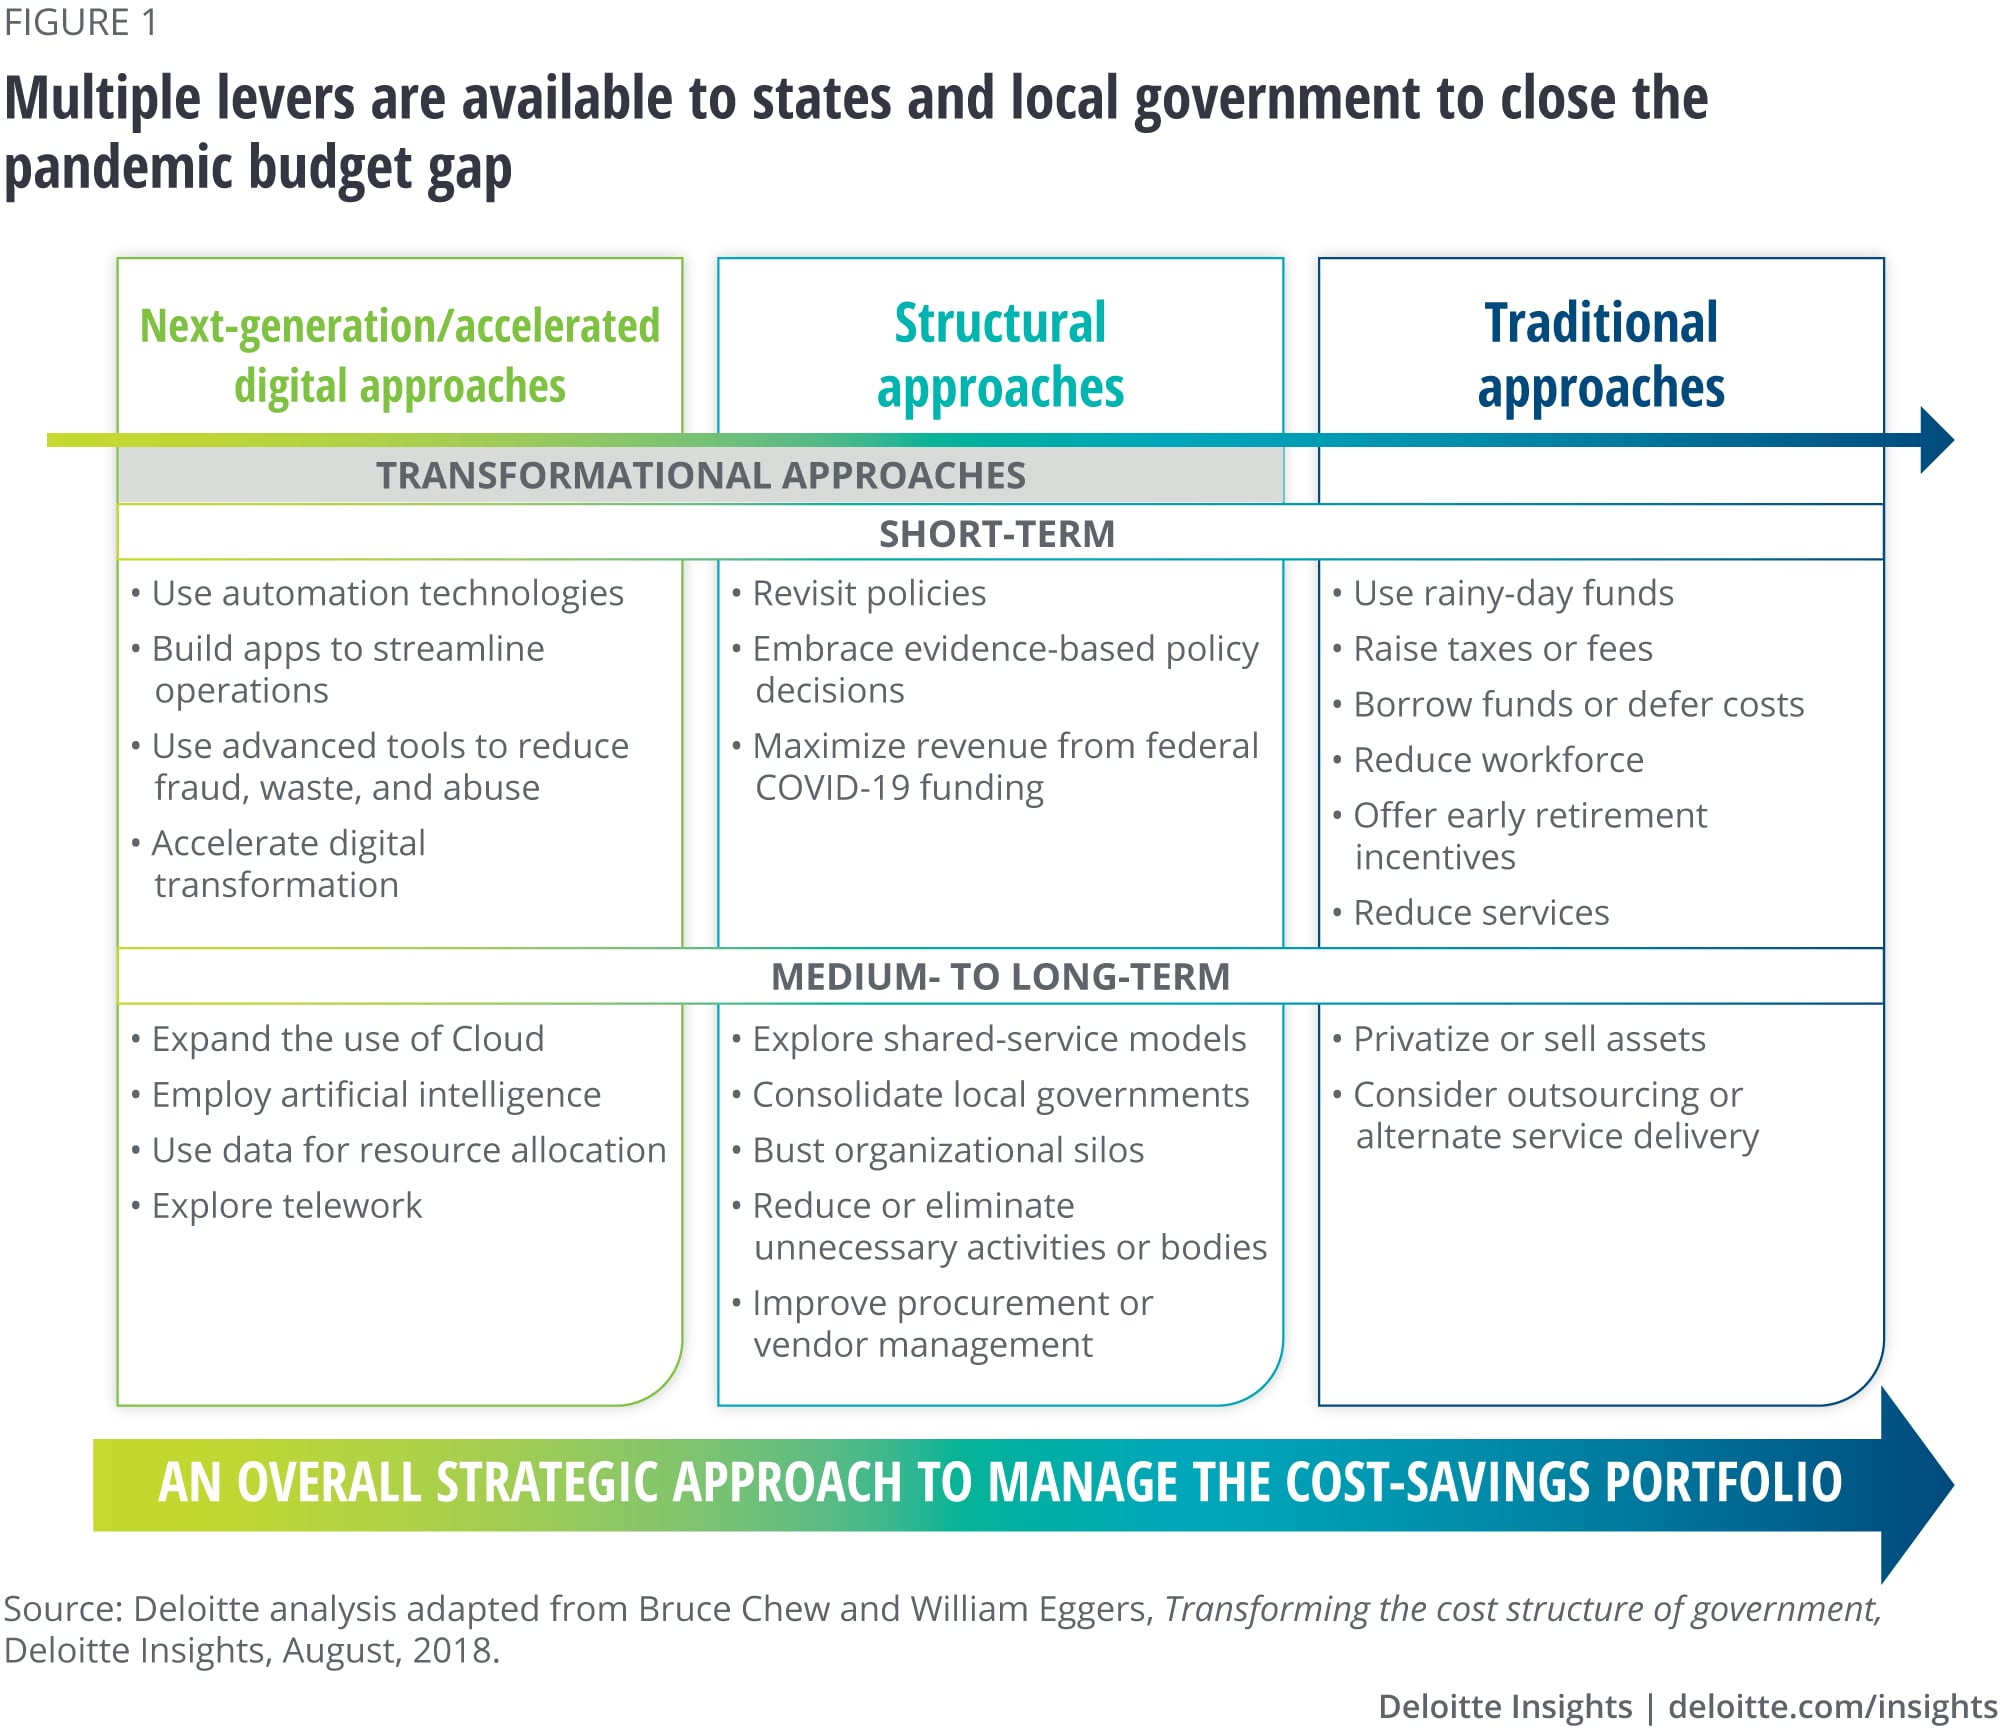 Multiple levers are available to states and local governments to close the pandemic budget gap